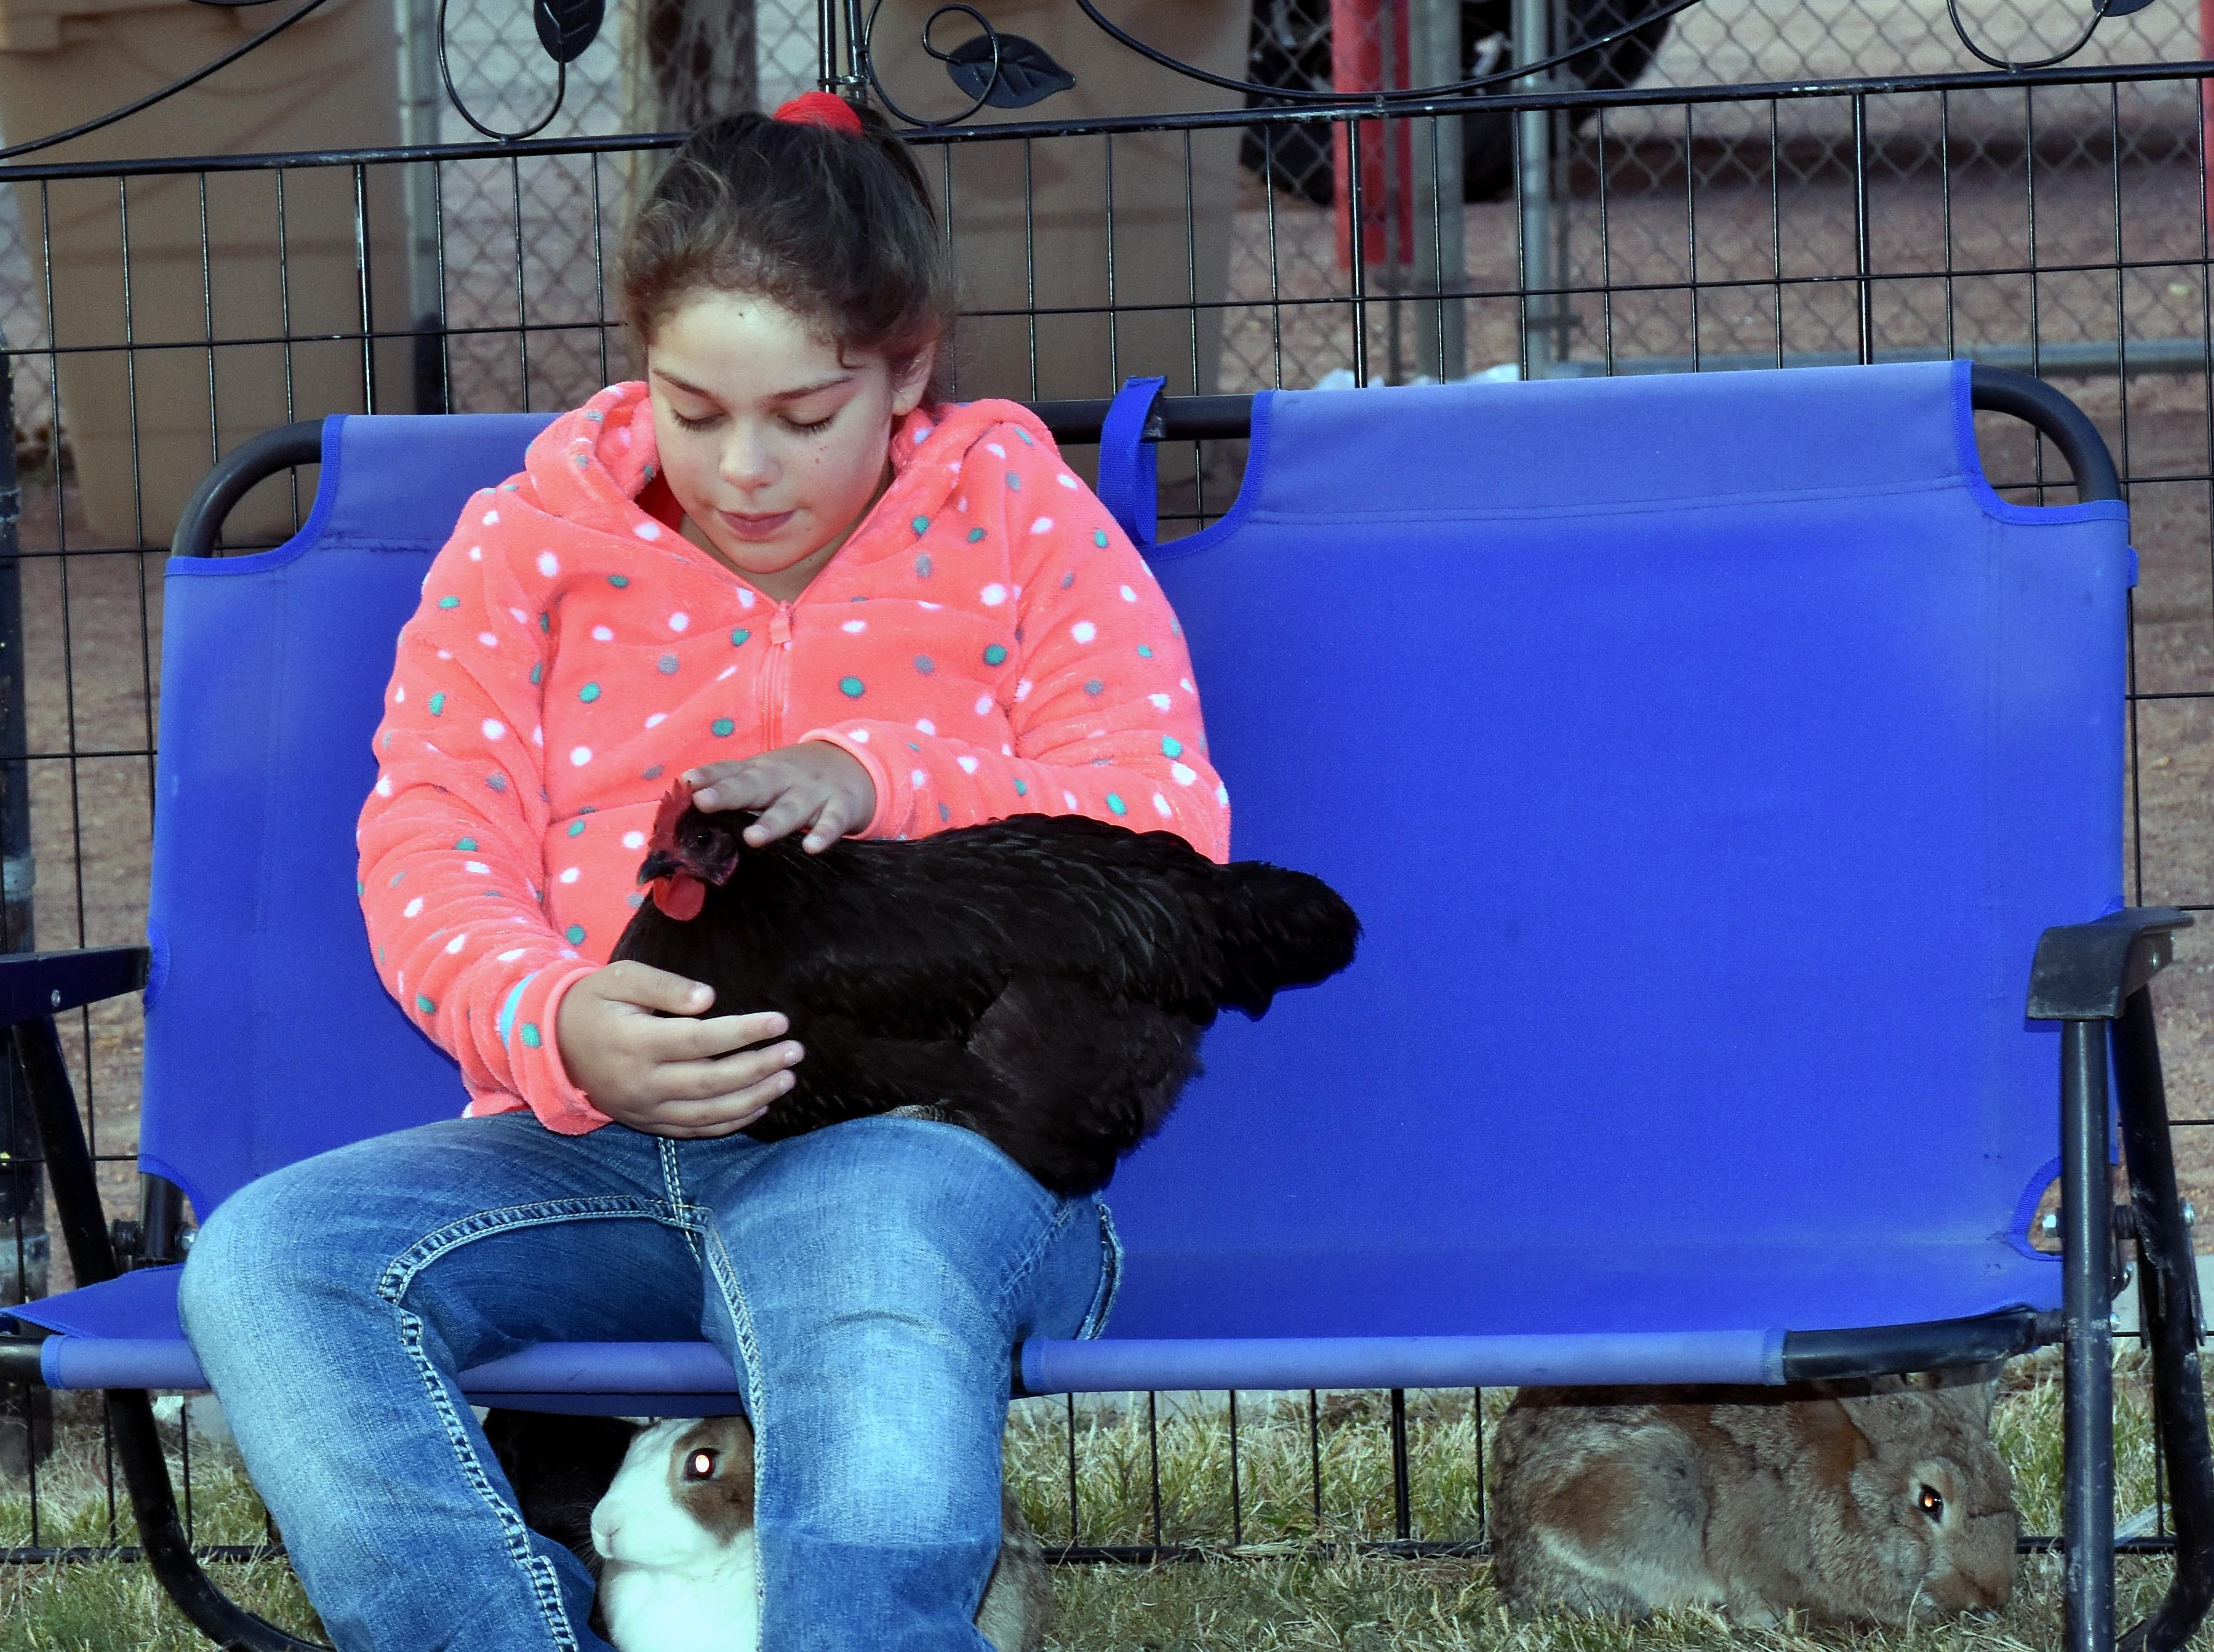 Autumn Rain Jackson, 12, from Las Cruces holds one of the many pets for kids to play with provided by Barnyard Buddies at the Las Cruces Country Music Festival on Saturday, Oct. 20, 2018.